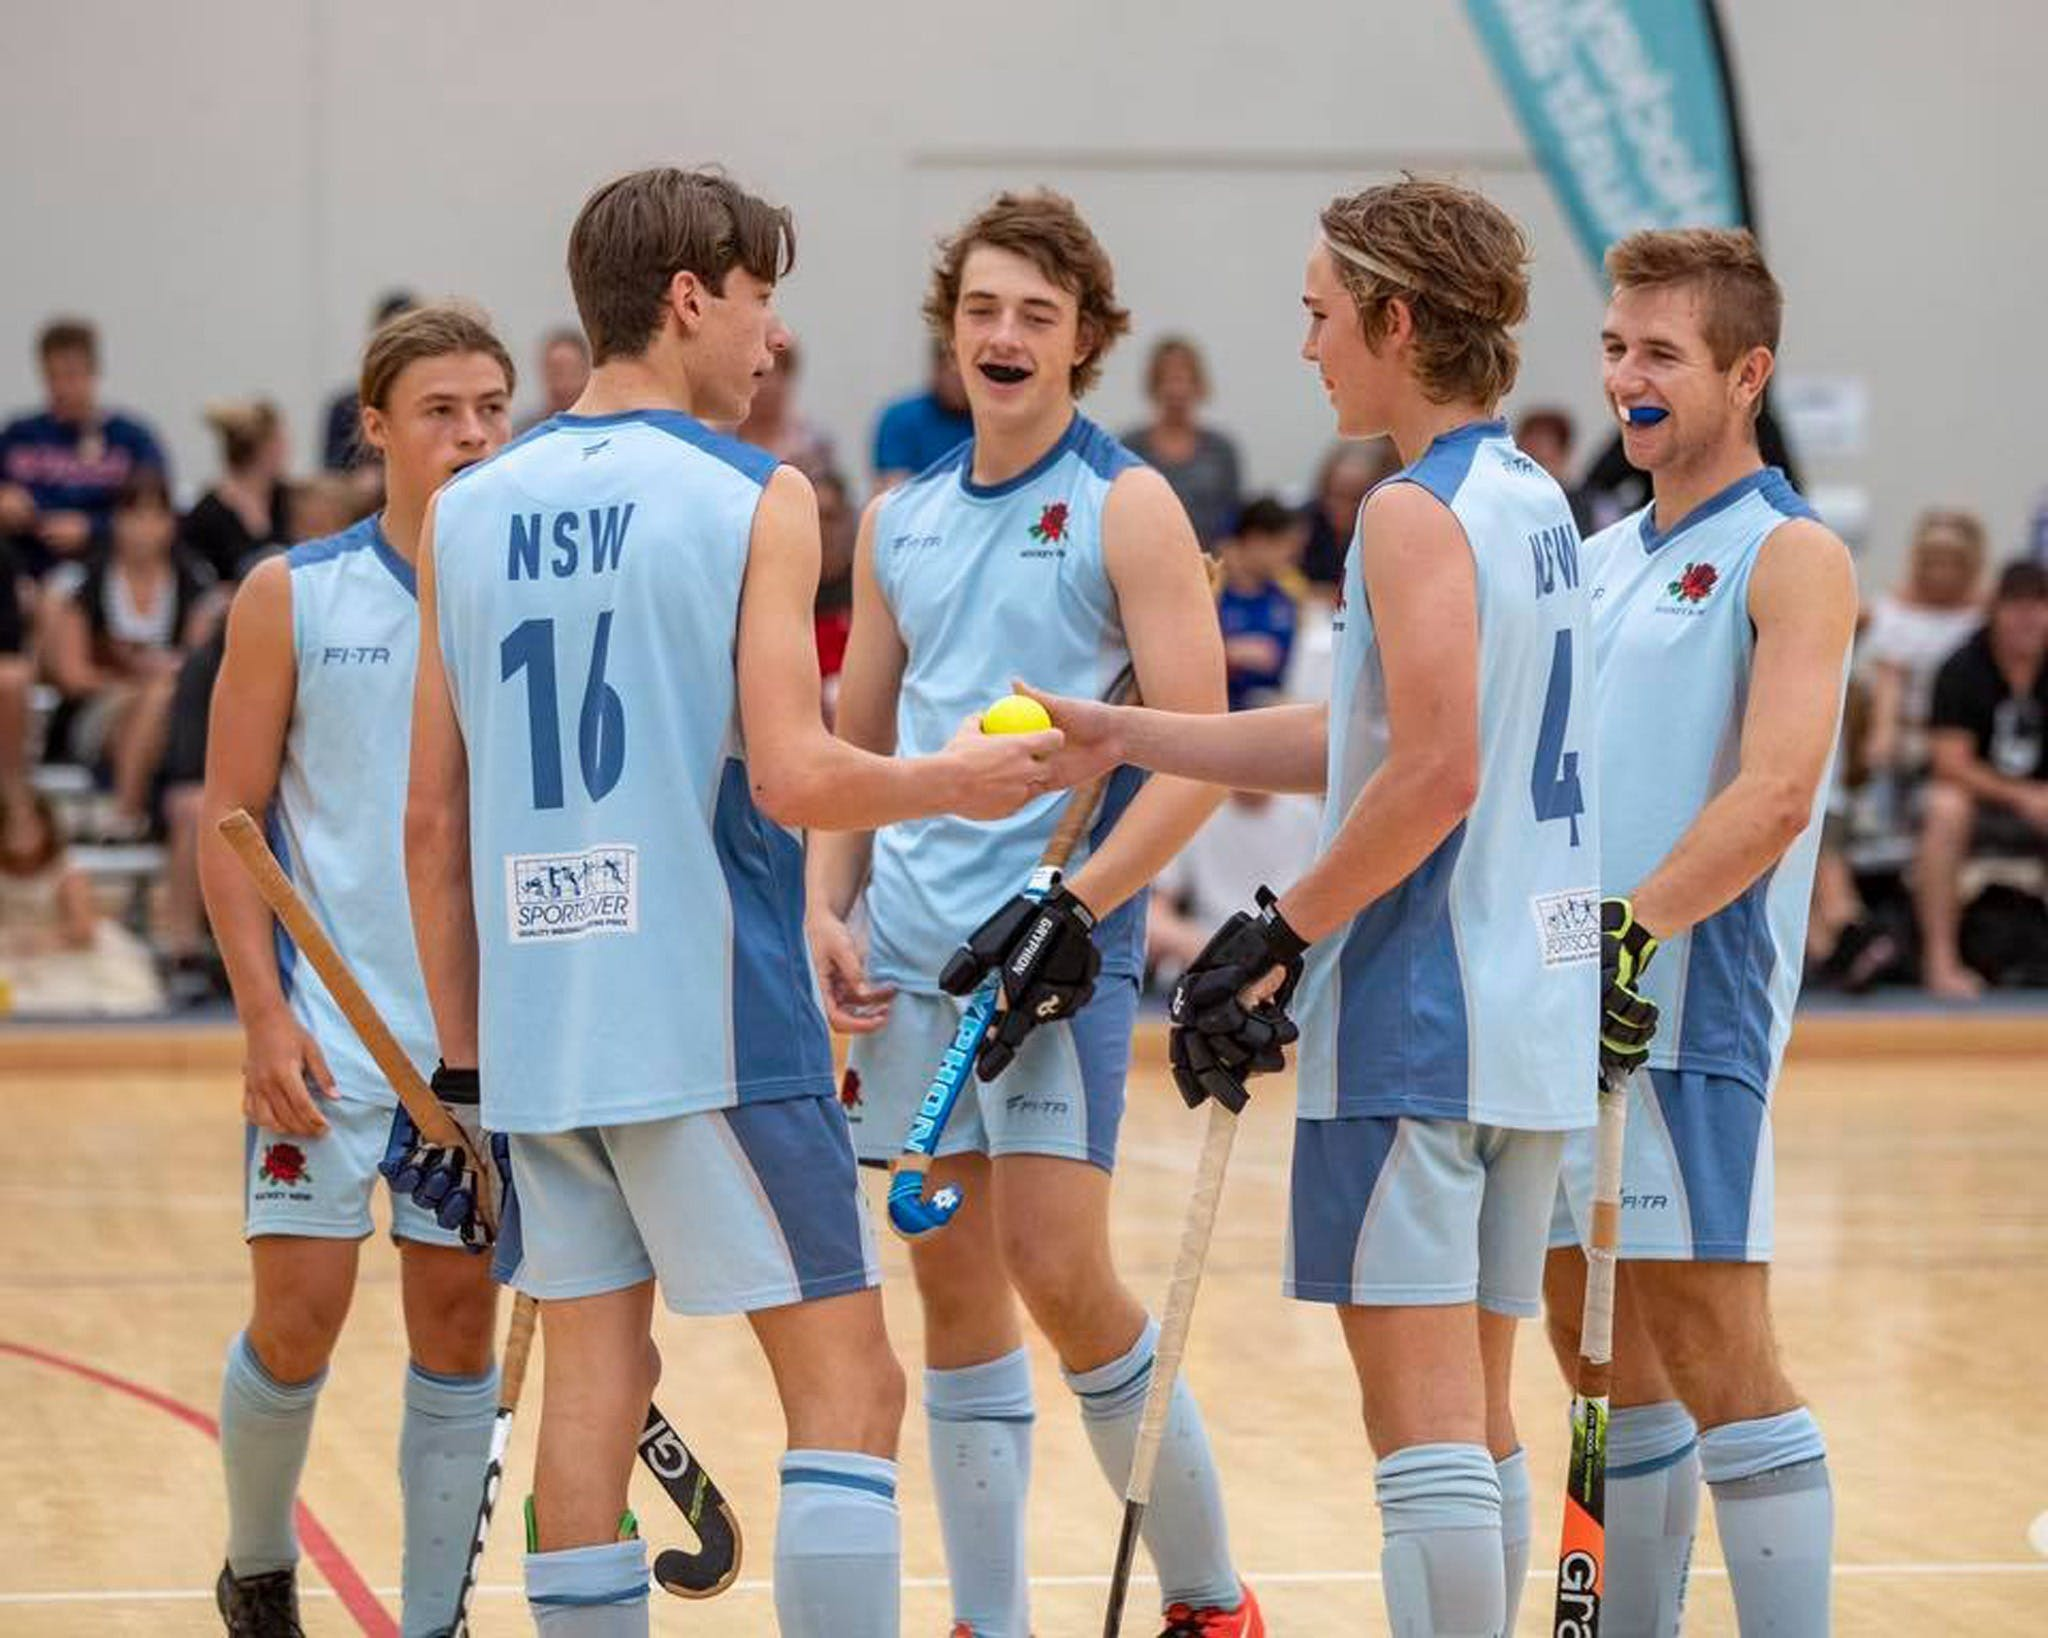 Hockey NSW Indoor State Championship  Open Men - QLD Tourism